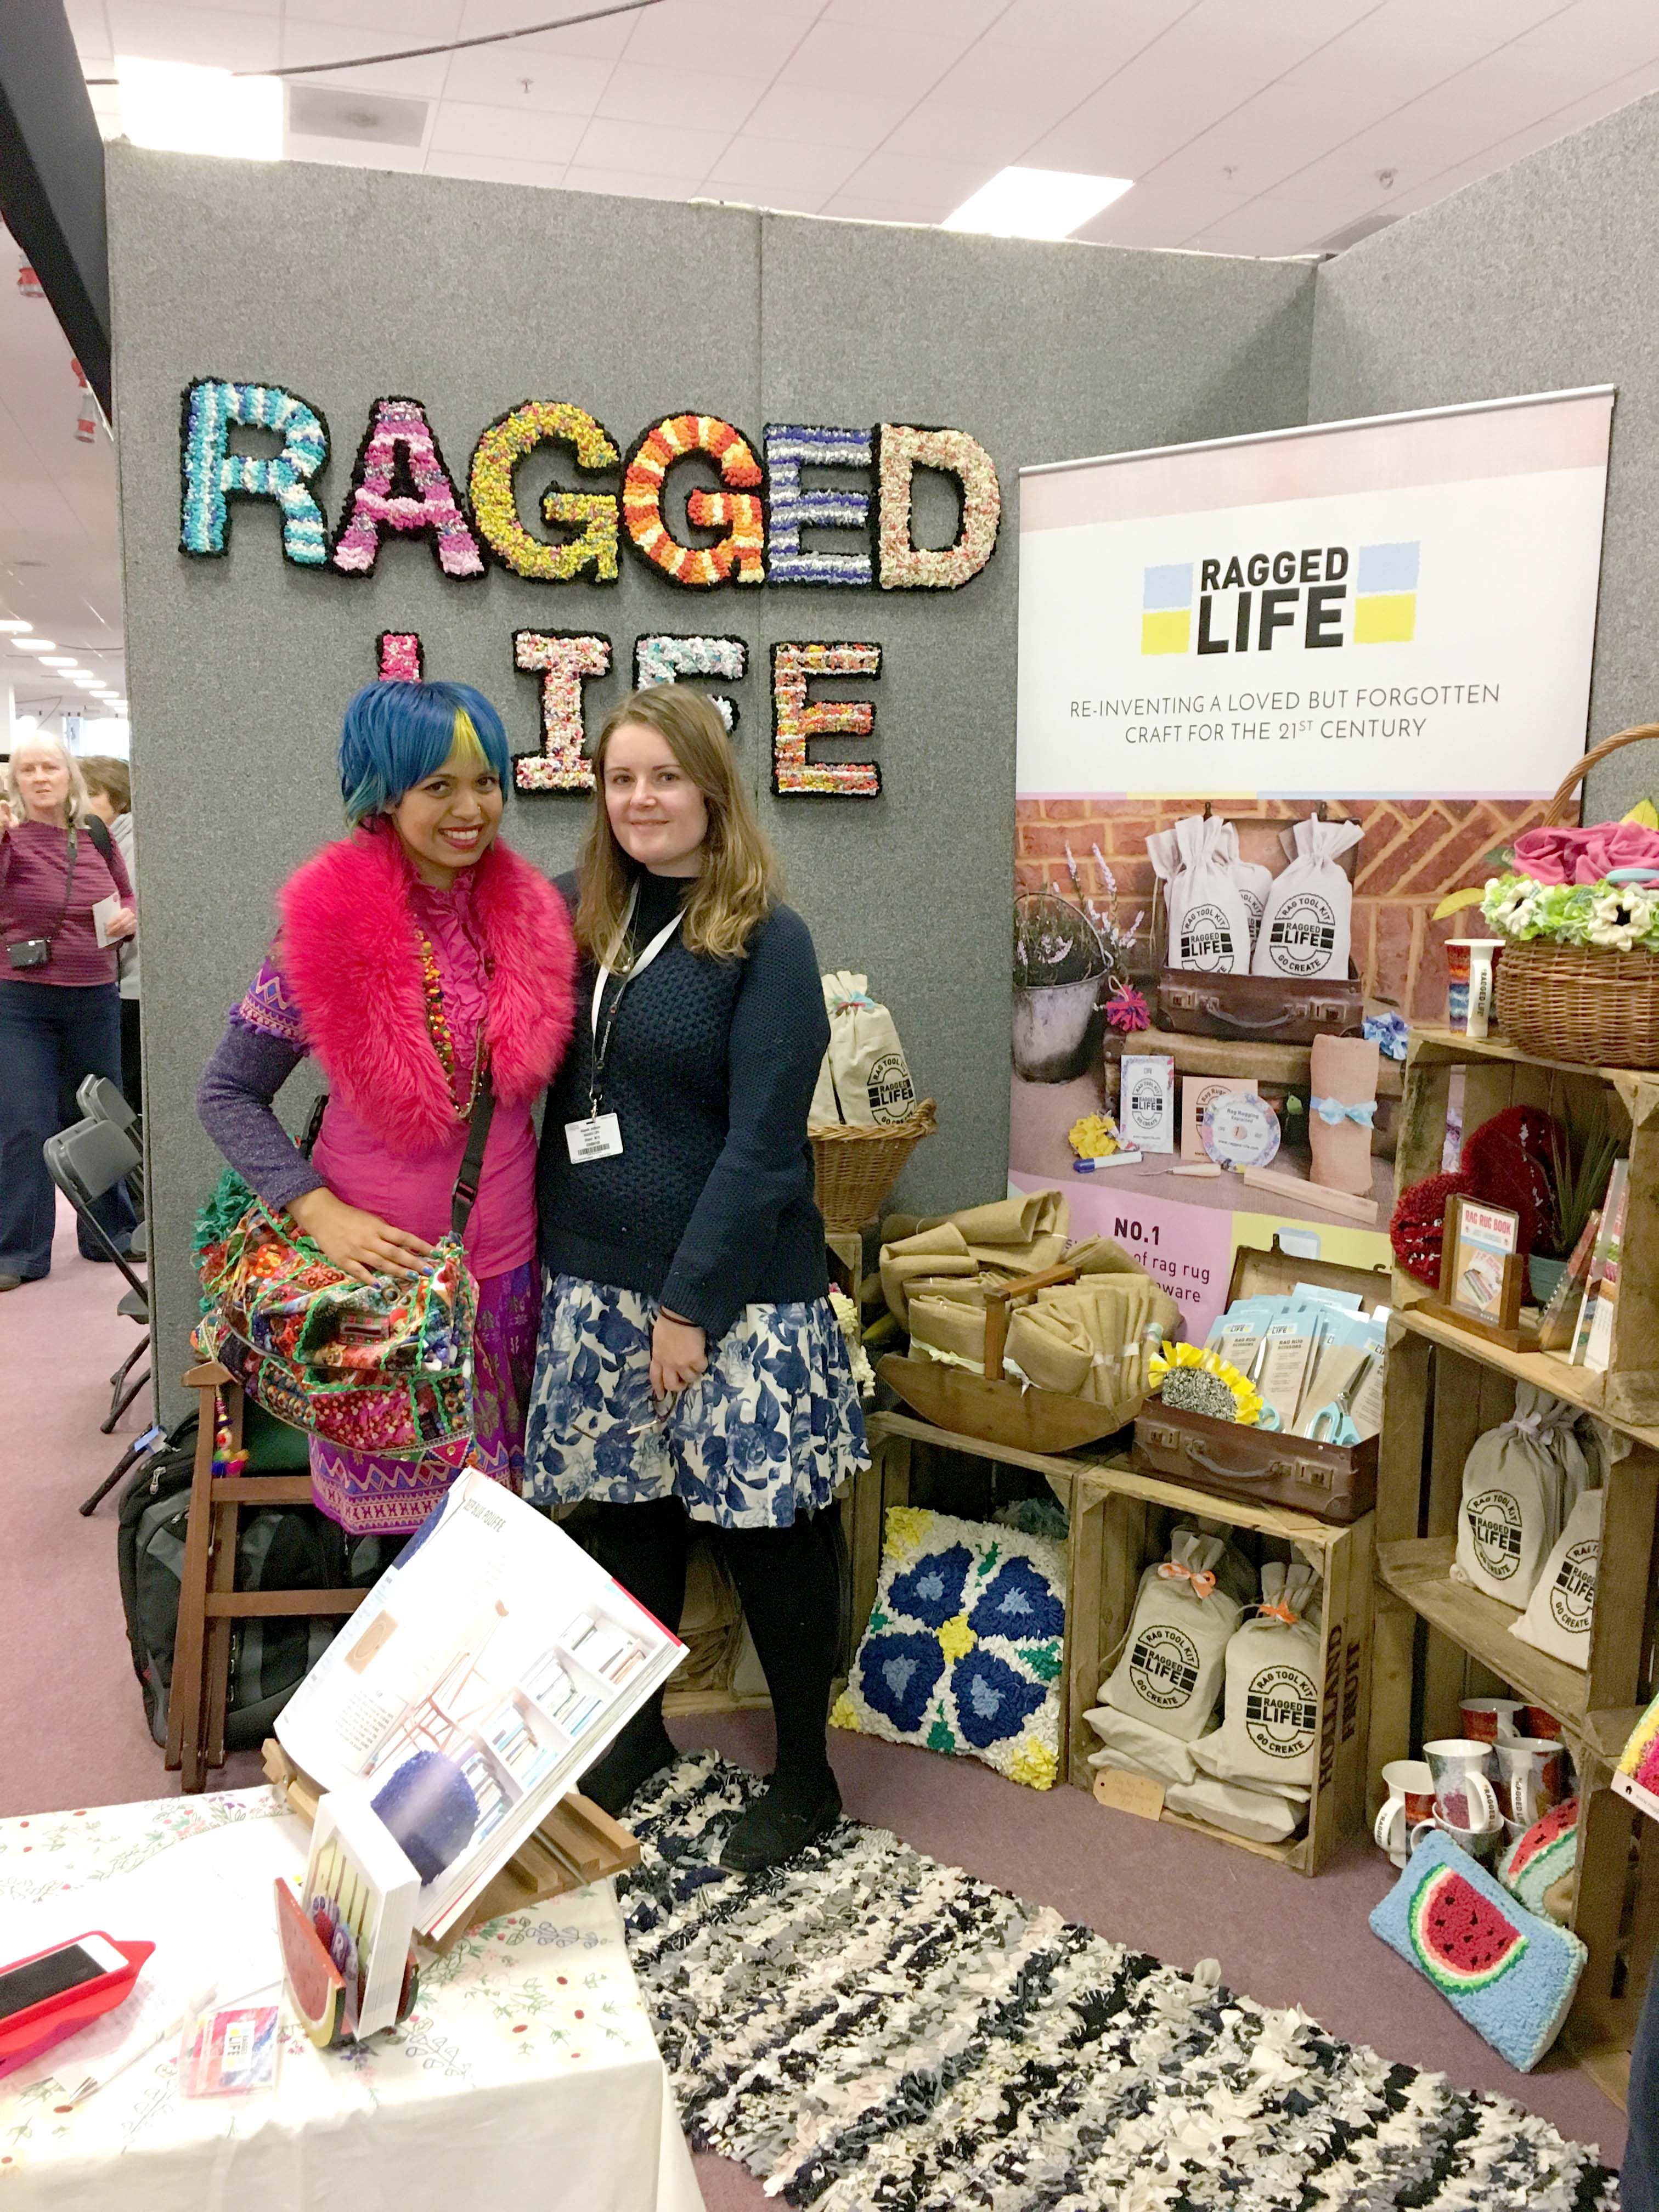 Elspeth Jackson from Ragged Life with Momtaz from Craft Cafe